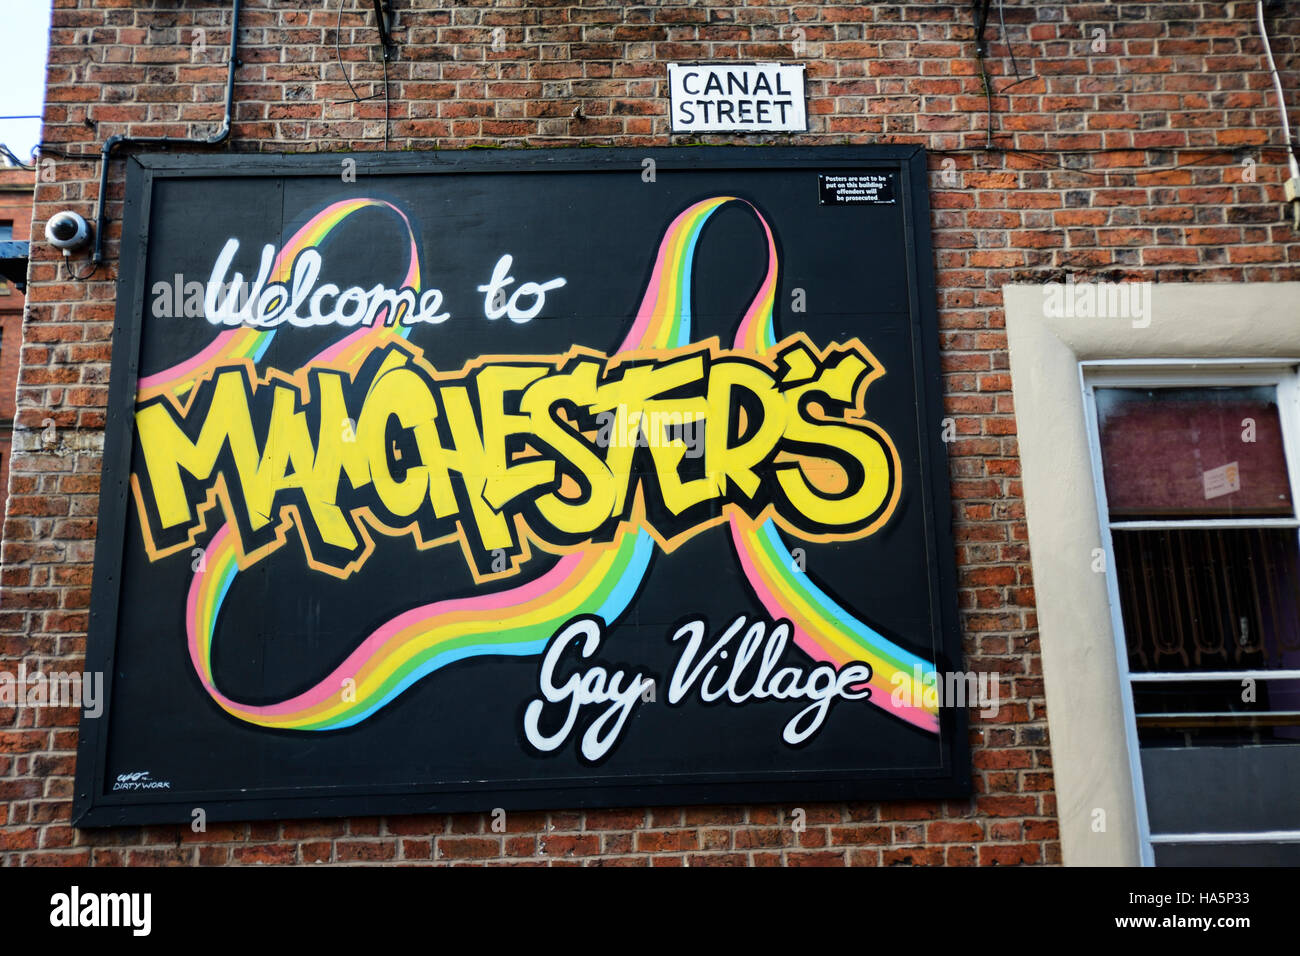 Welcome to Manchester's gay village sign in Canal Street, Manchester. - Stock Image